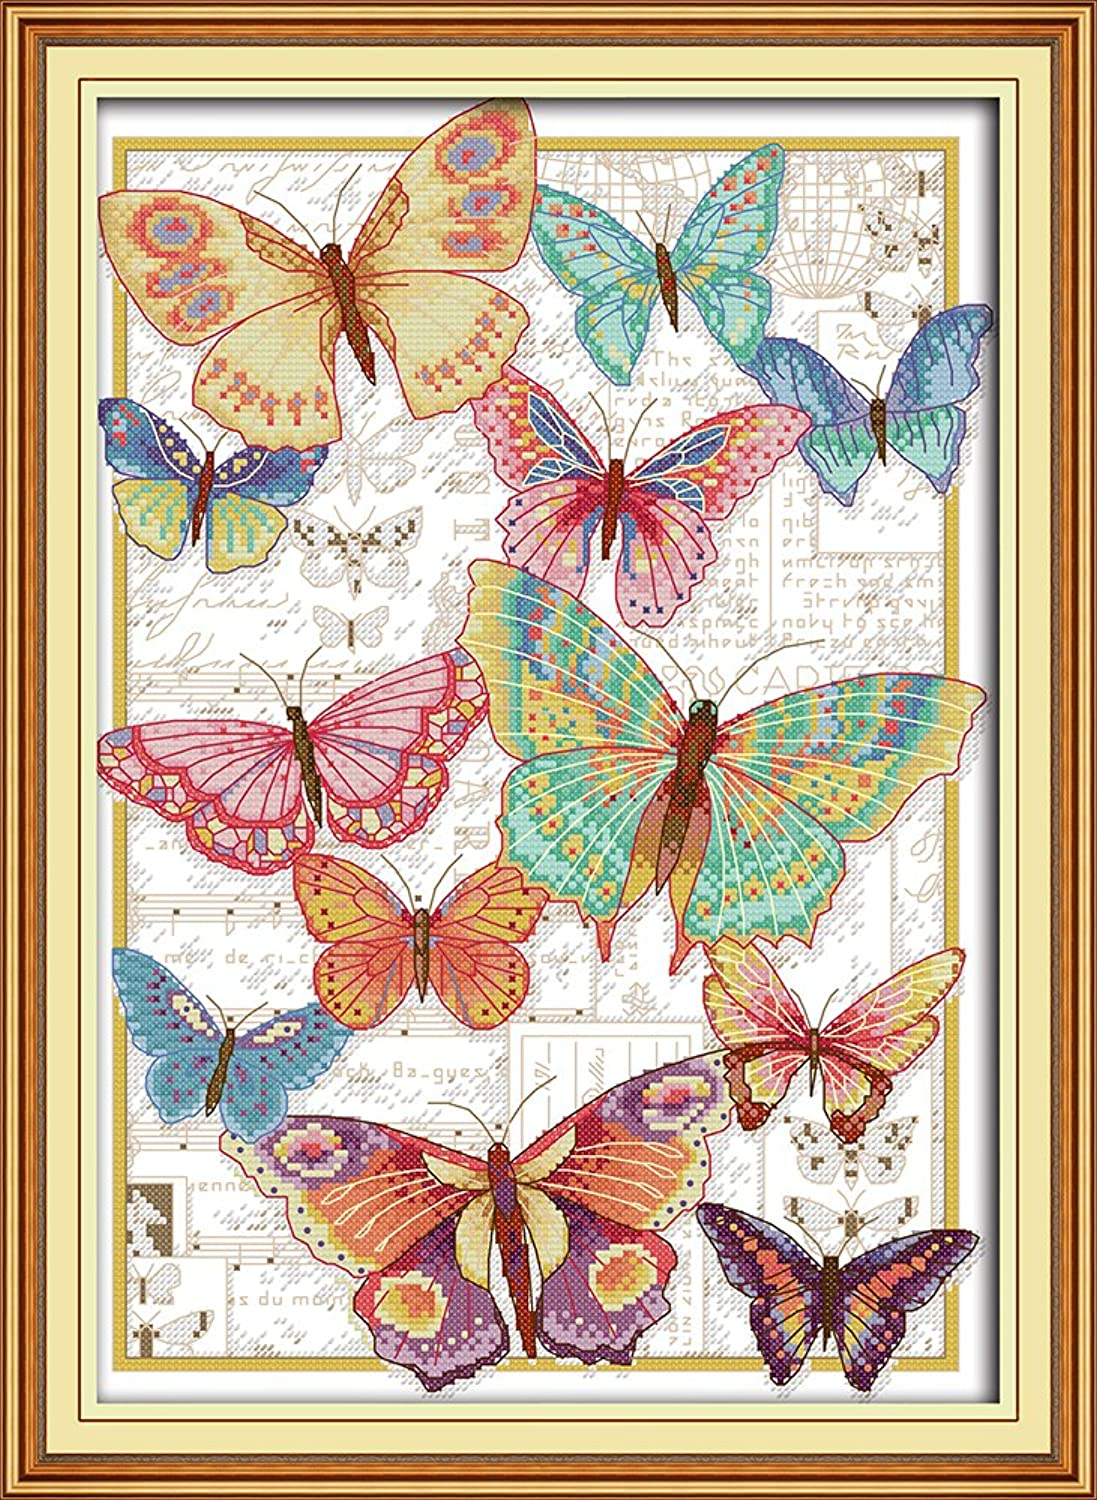 Full Range of Embroidery Starter Kits Stamped Cross Stitch Kits Beginners for DIY Embroidery with 40 Pattern Designs - Butterflies